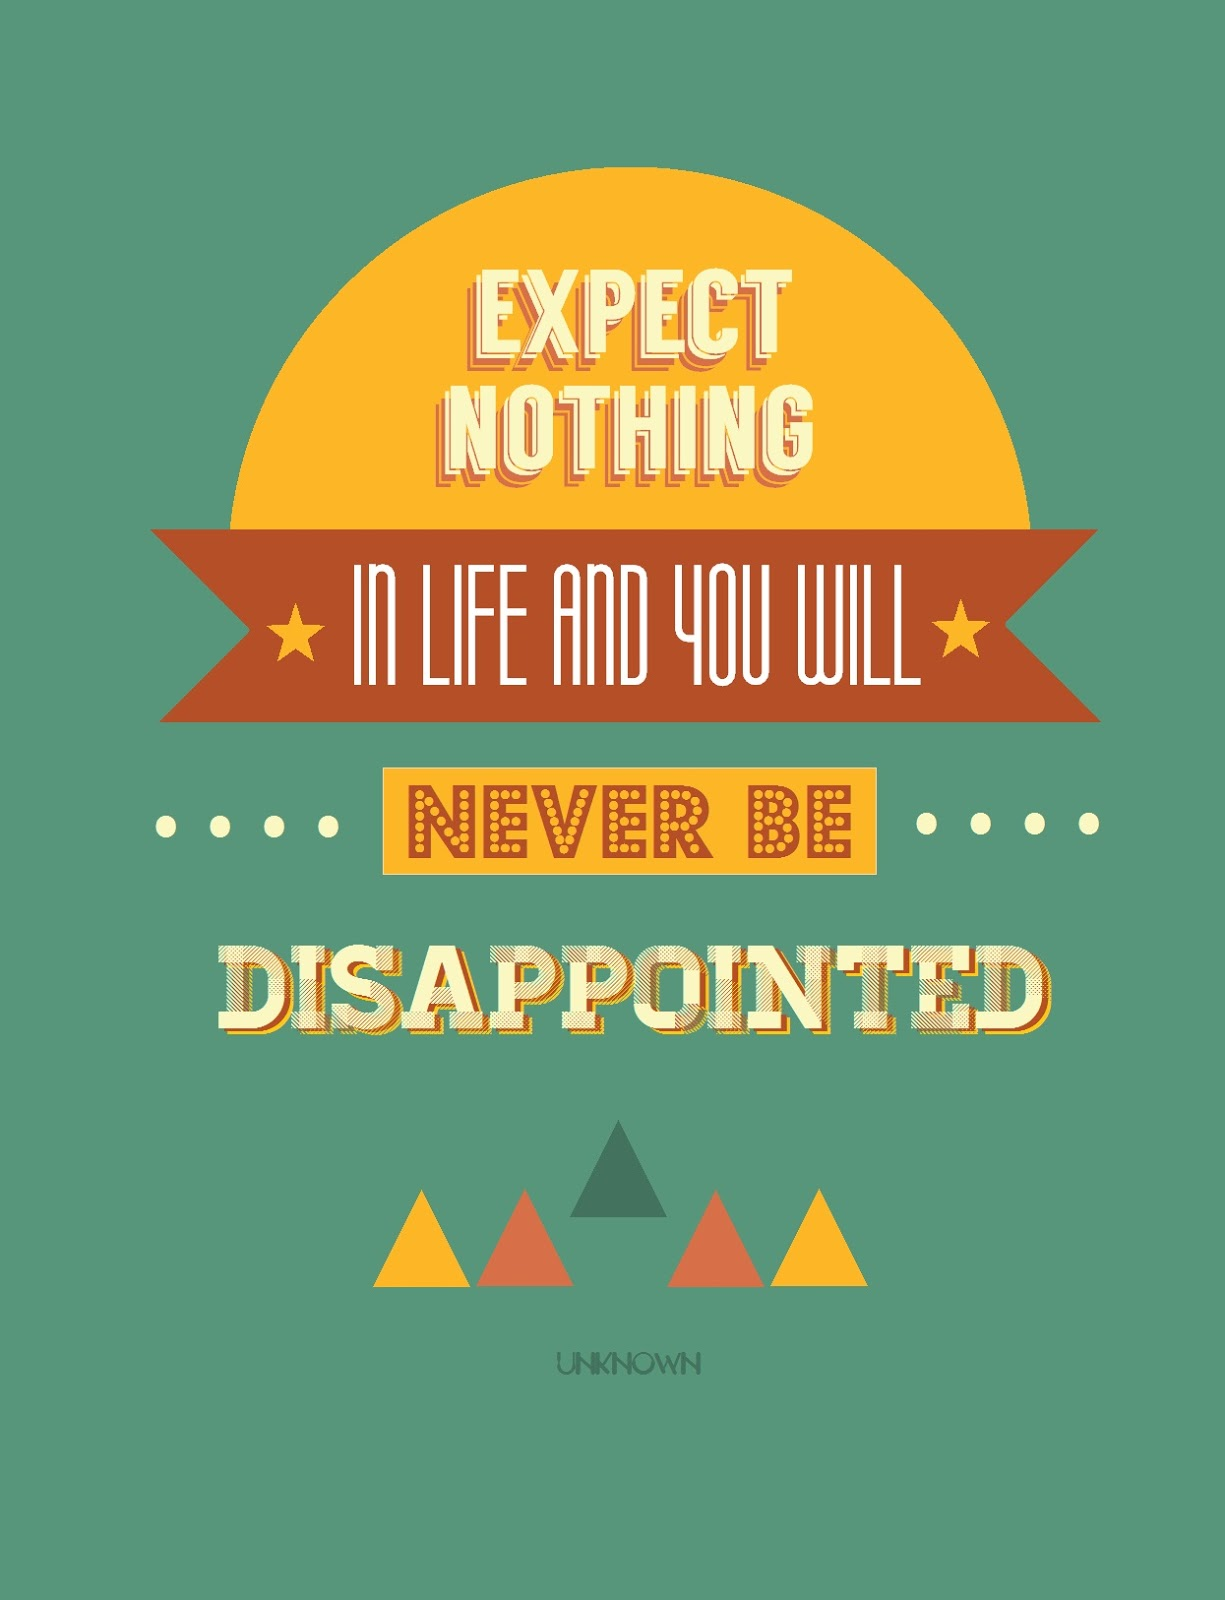 Expect nothing in life and you will never be disappointed.